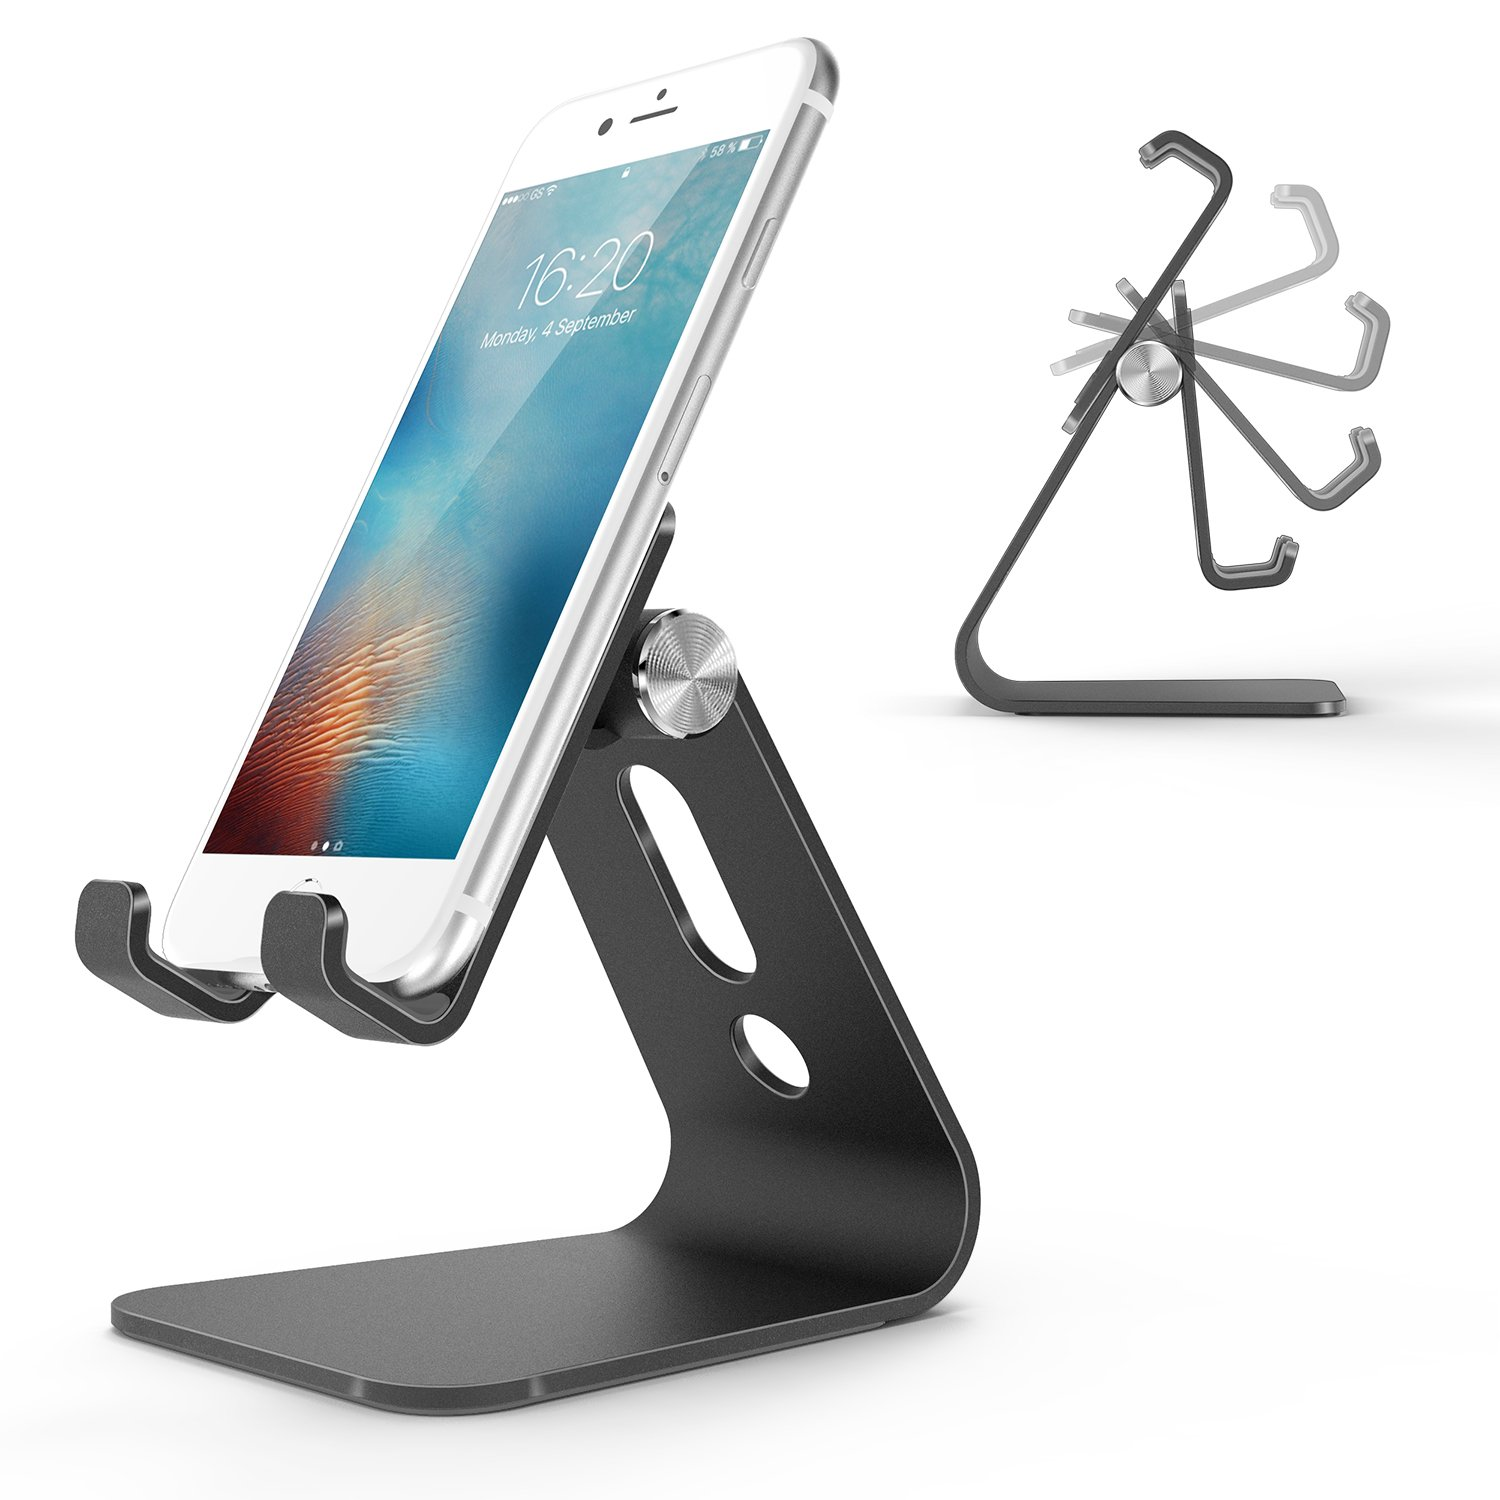 Cell Phone Stand, OMOTON Adjustable Aluminum Desktop Cellphone Tablet Stand Holder for Cellphones, iPhone and E-readers, Black by OMOTON (Image #1)